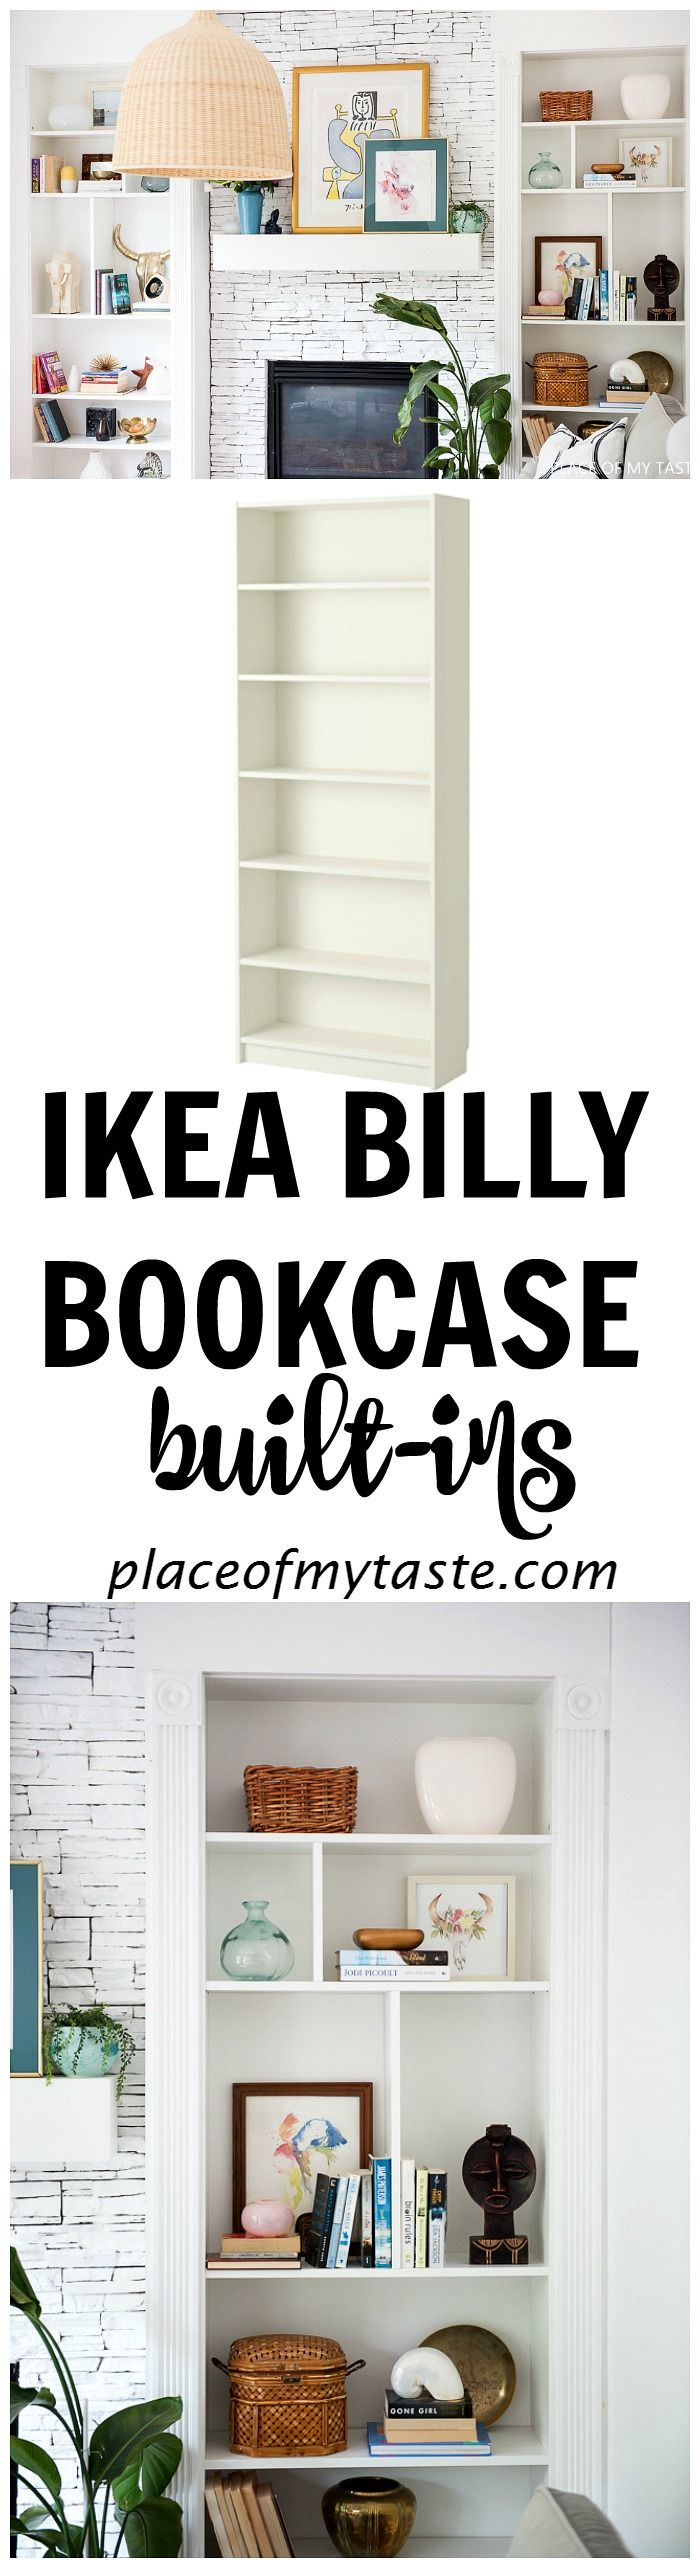 Premade Built In Bookcases Diy How To Install Ikea Bookcases So They Look Like Built Ins